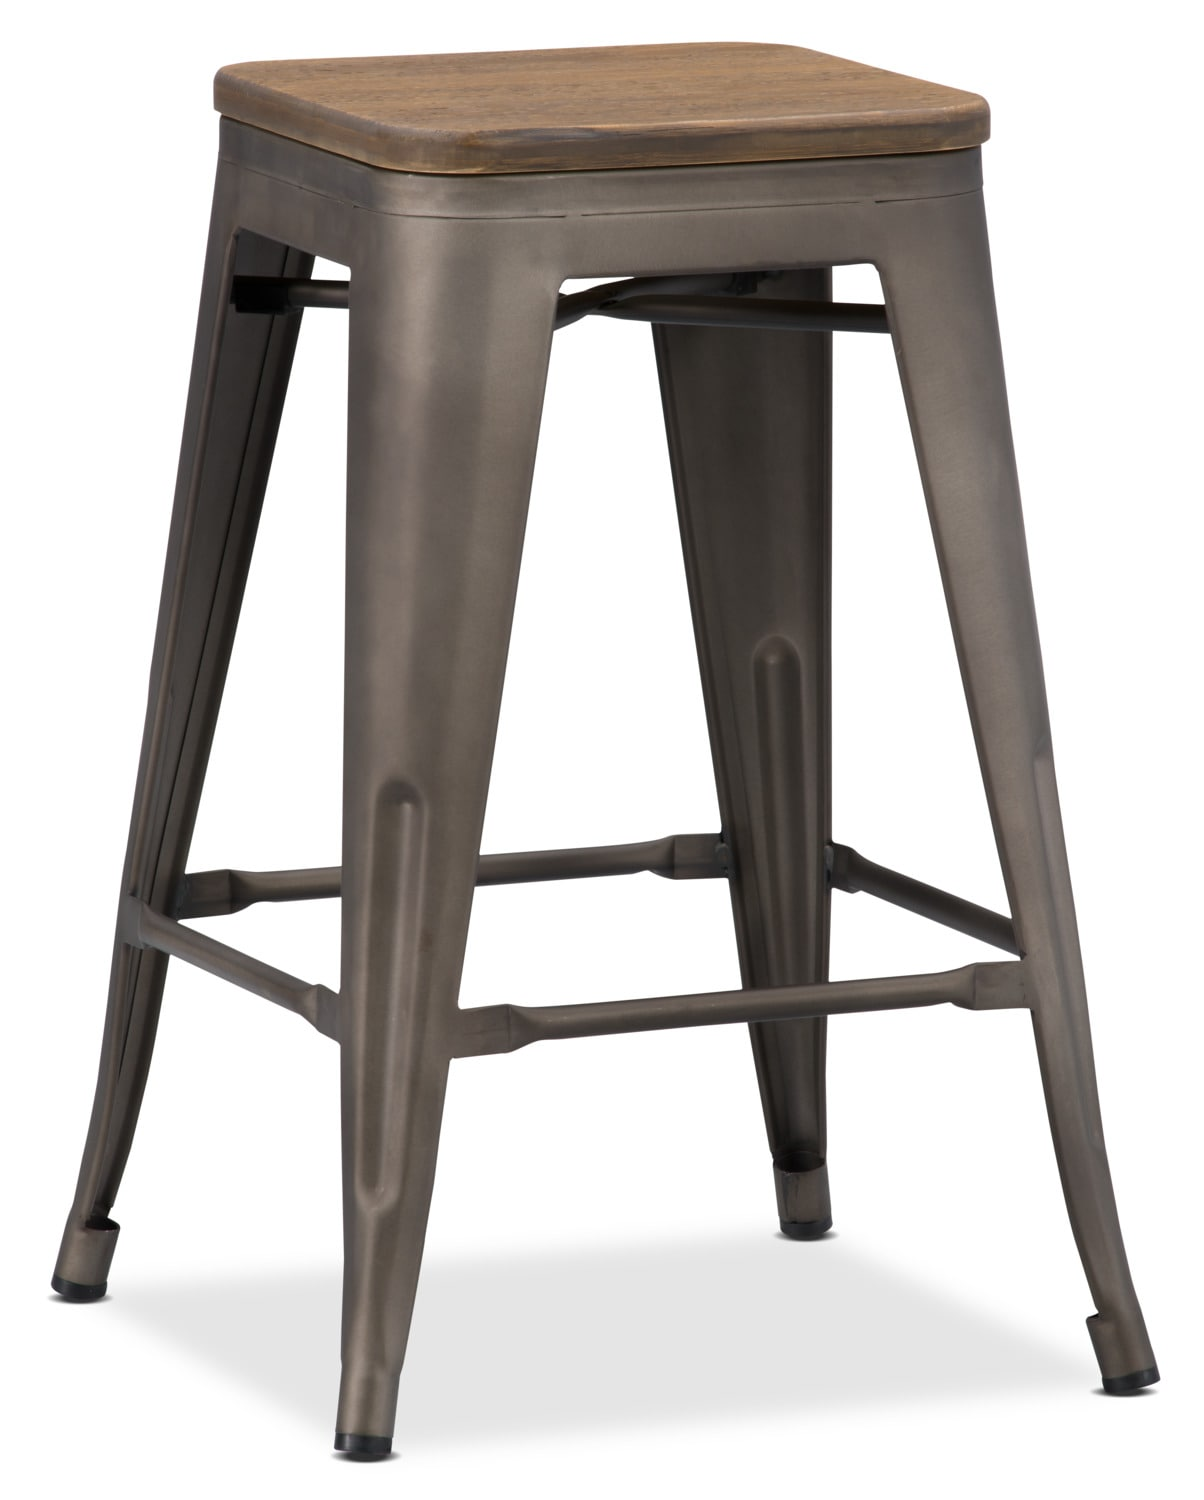 Peyton Counterheight Dining Stool